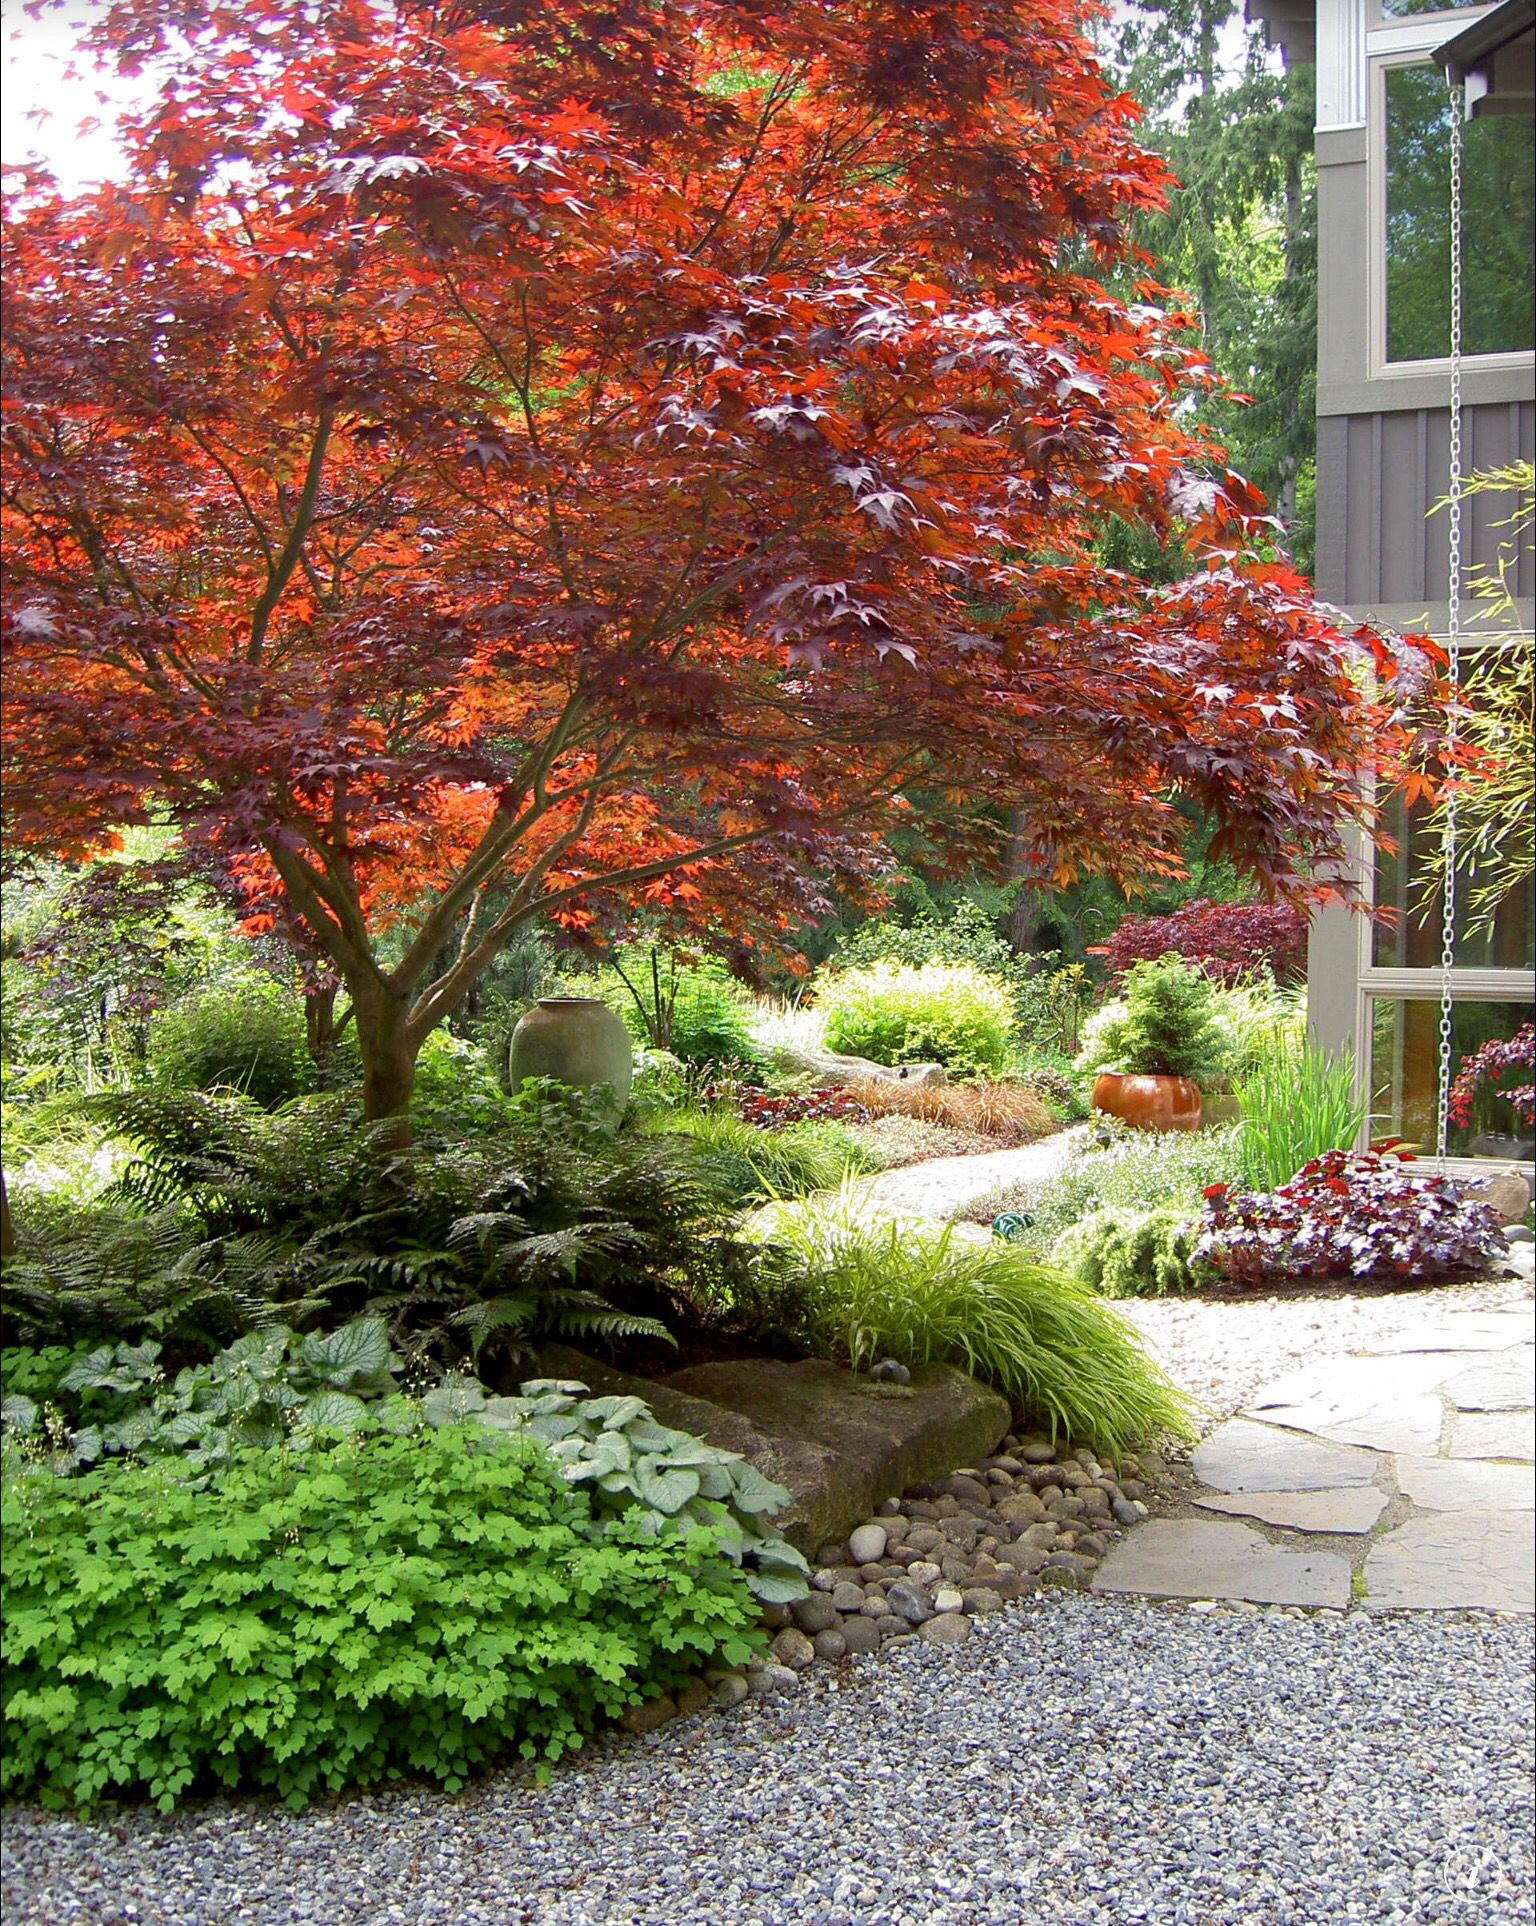 Love The Tree Landscapes And Pavers Courtesy Of Houzz Com Front Yard Landscaping Landscape Design Japanese Garden